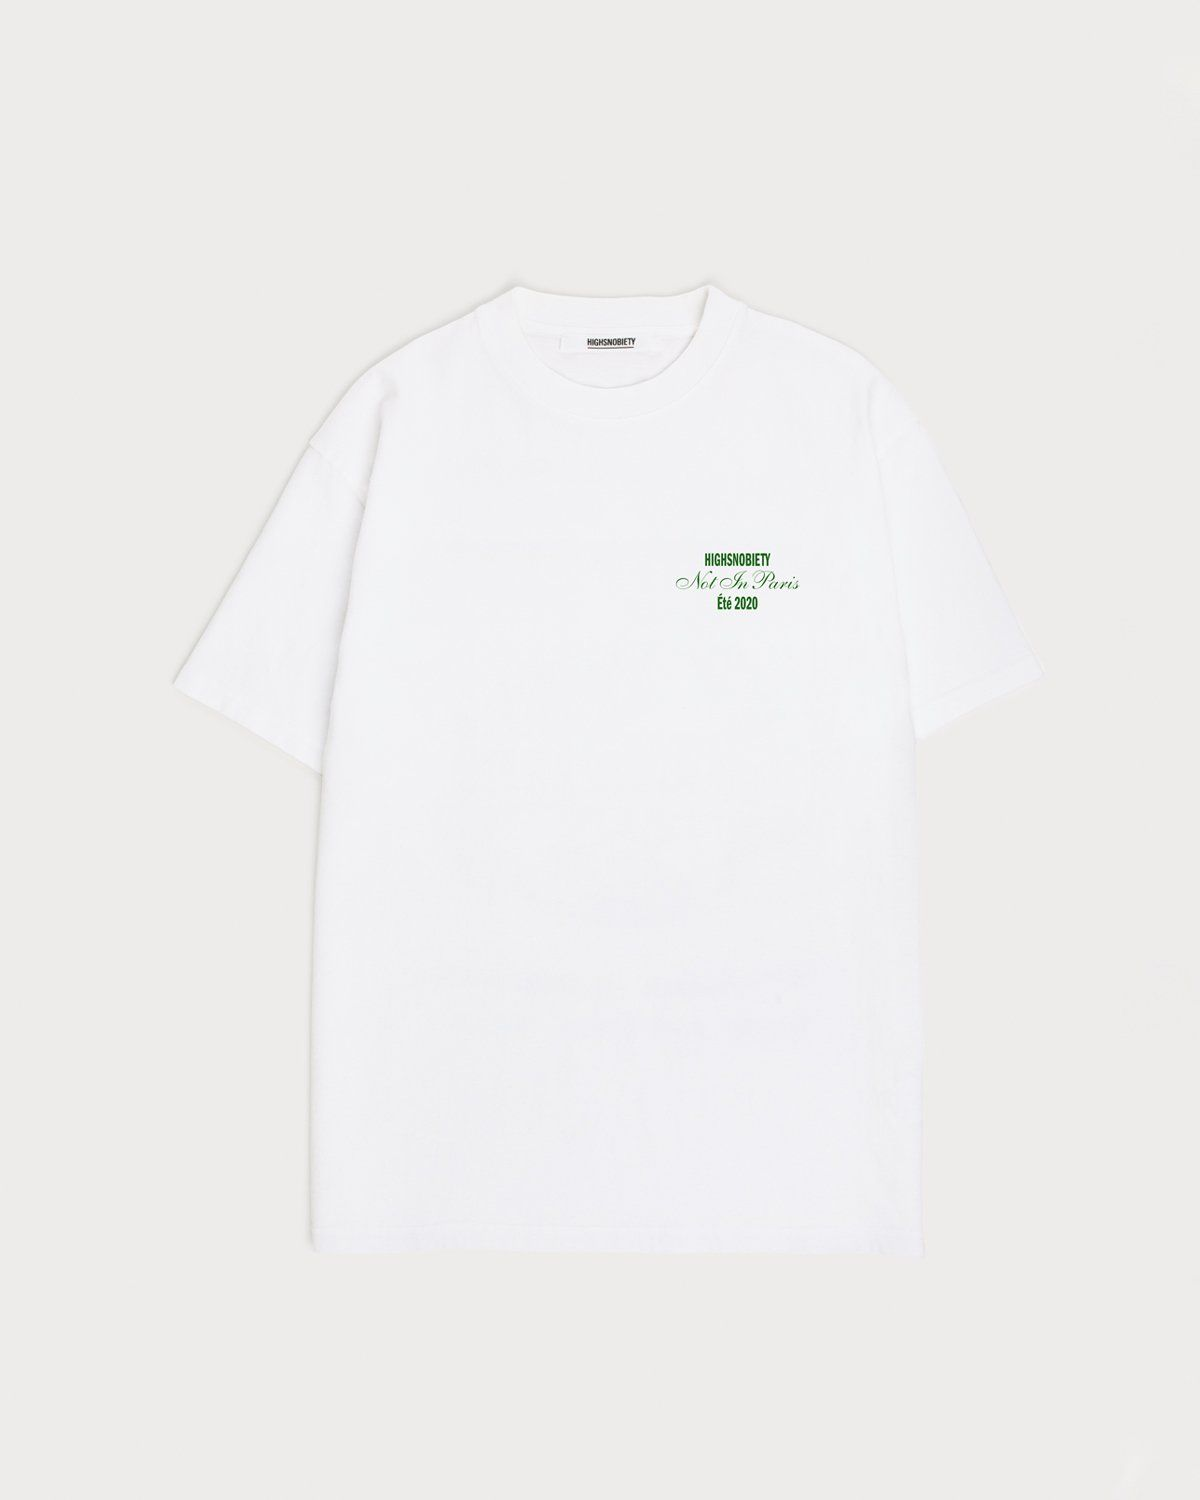 Not In Paris Presented By Highsnobiety - T-Shirt White - Image 1